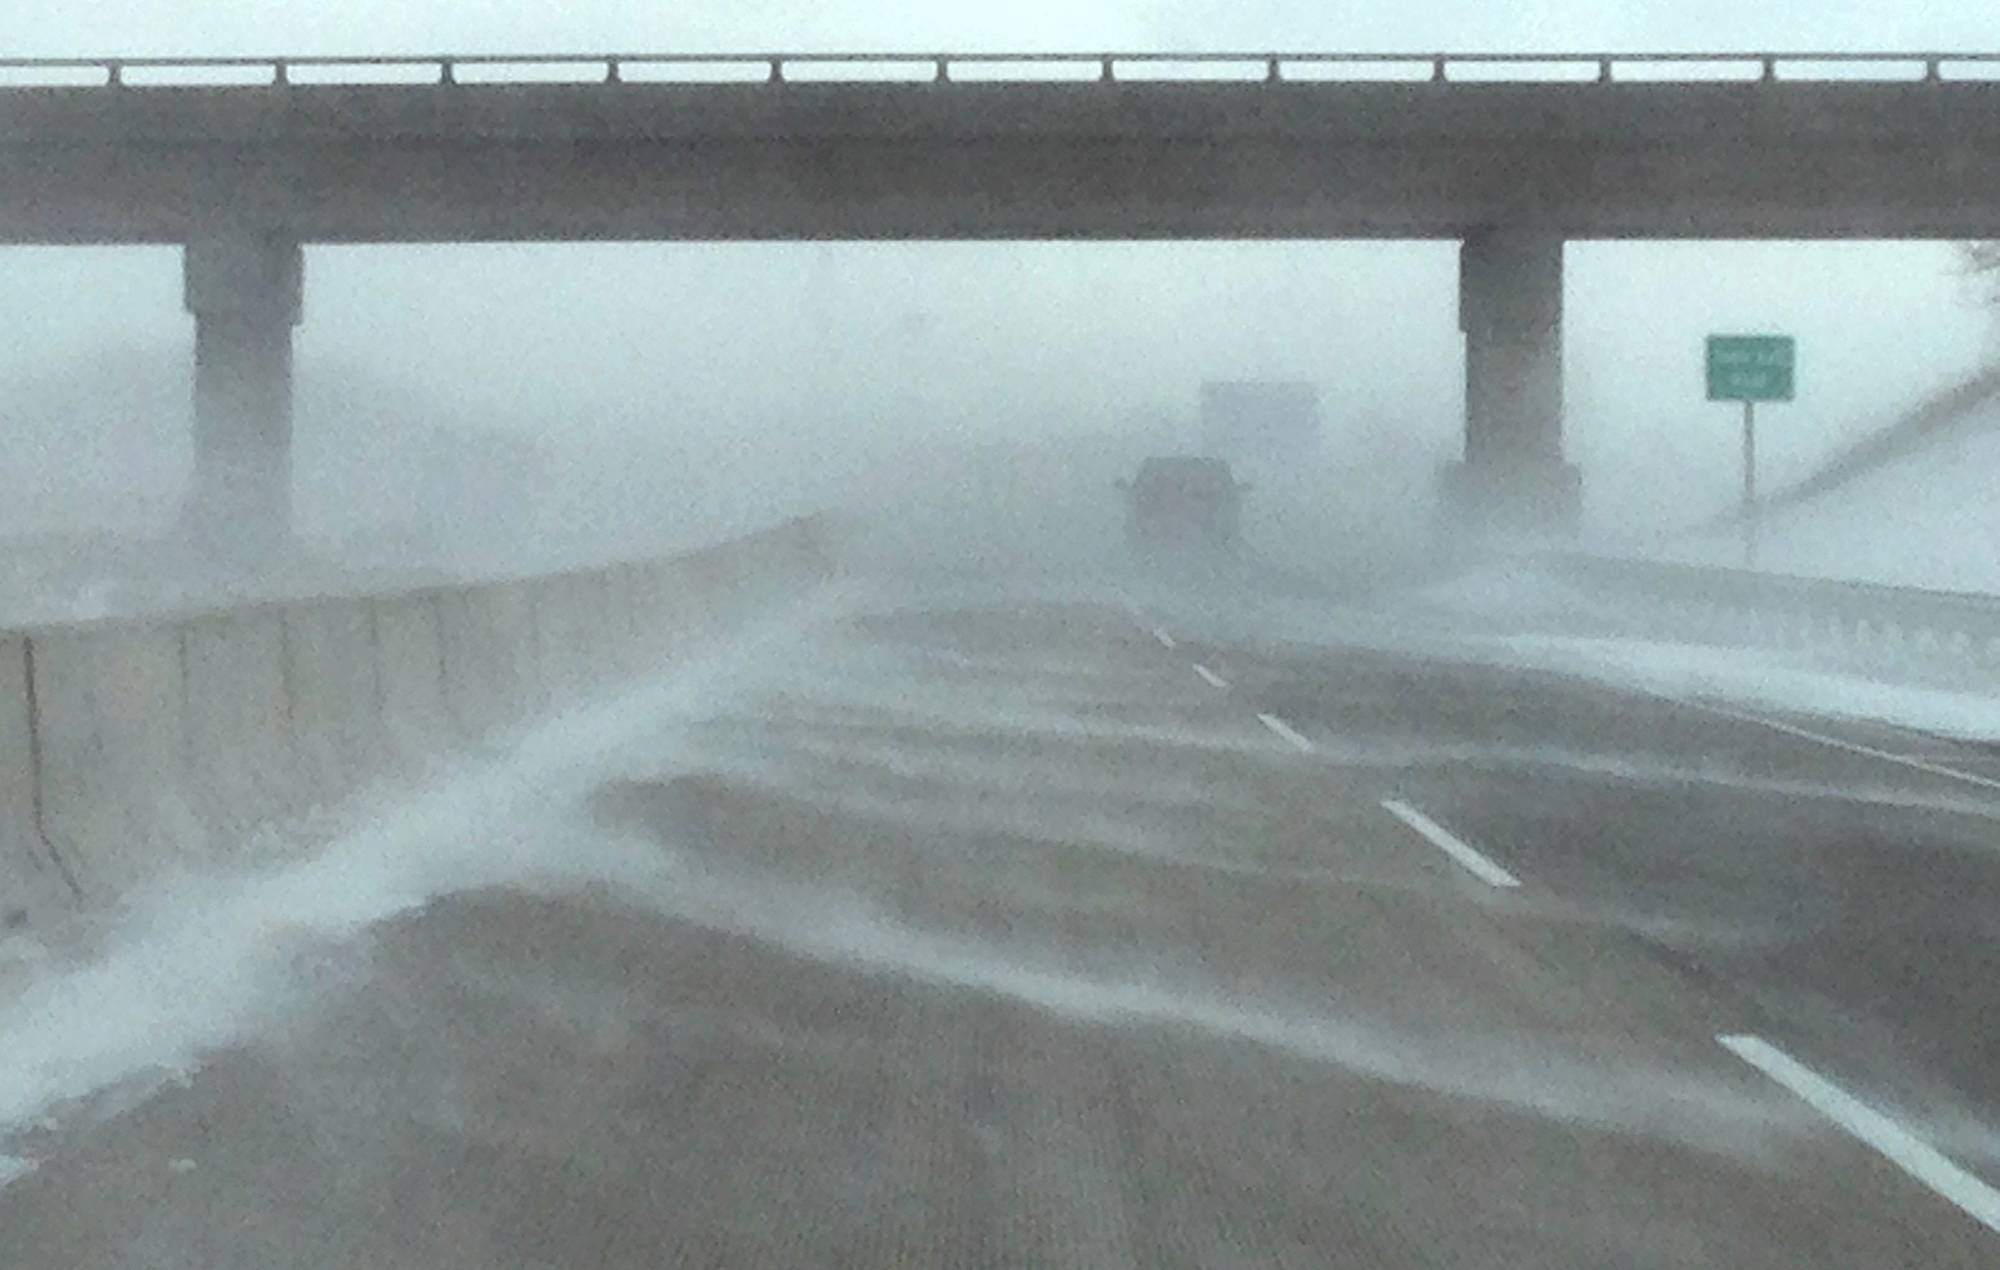 Strong winds created near white out conditions on the eastbound Jane Addams Tollway west of Elgin Friday morning.